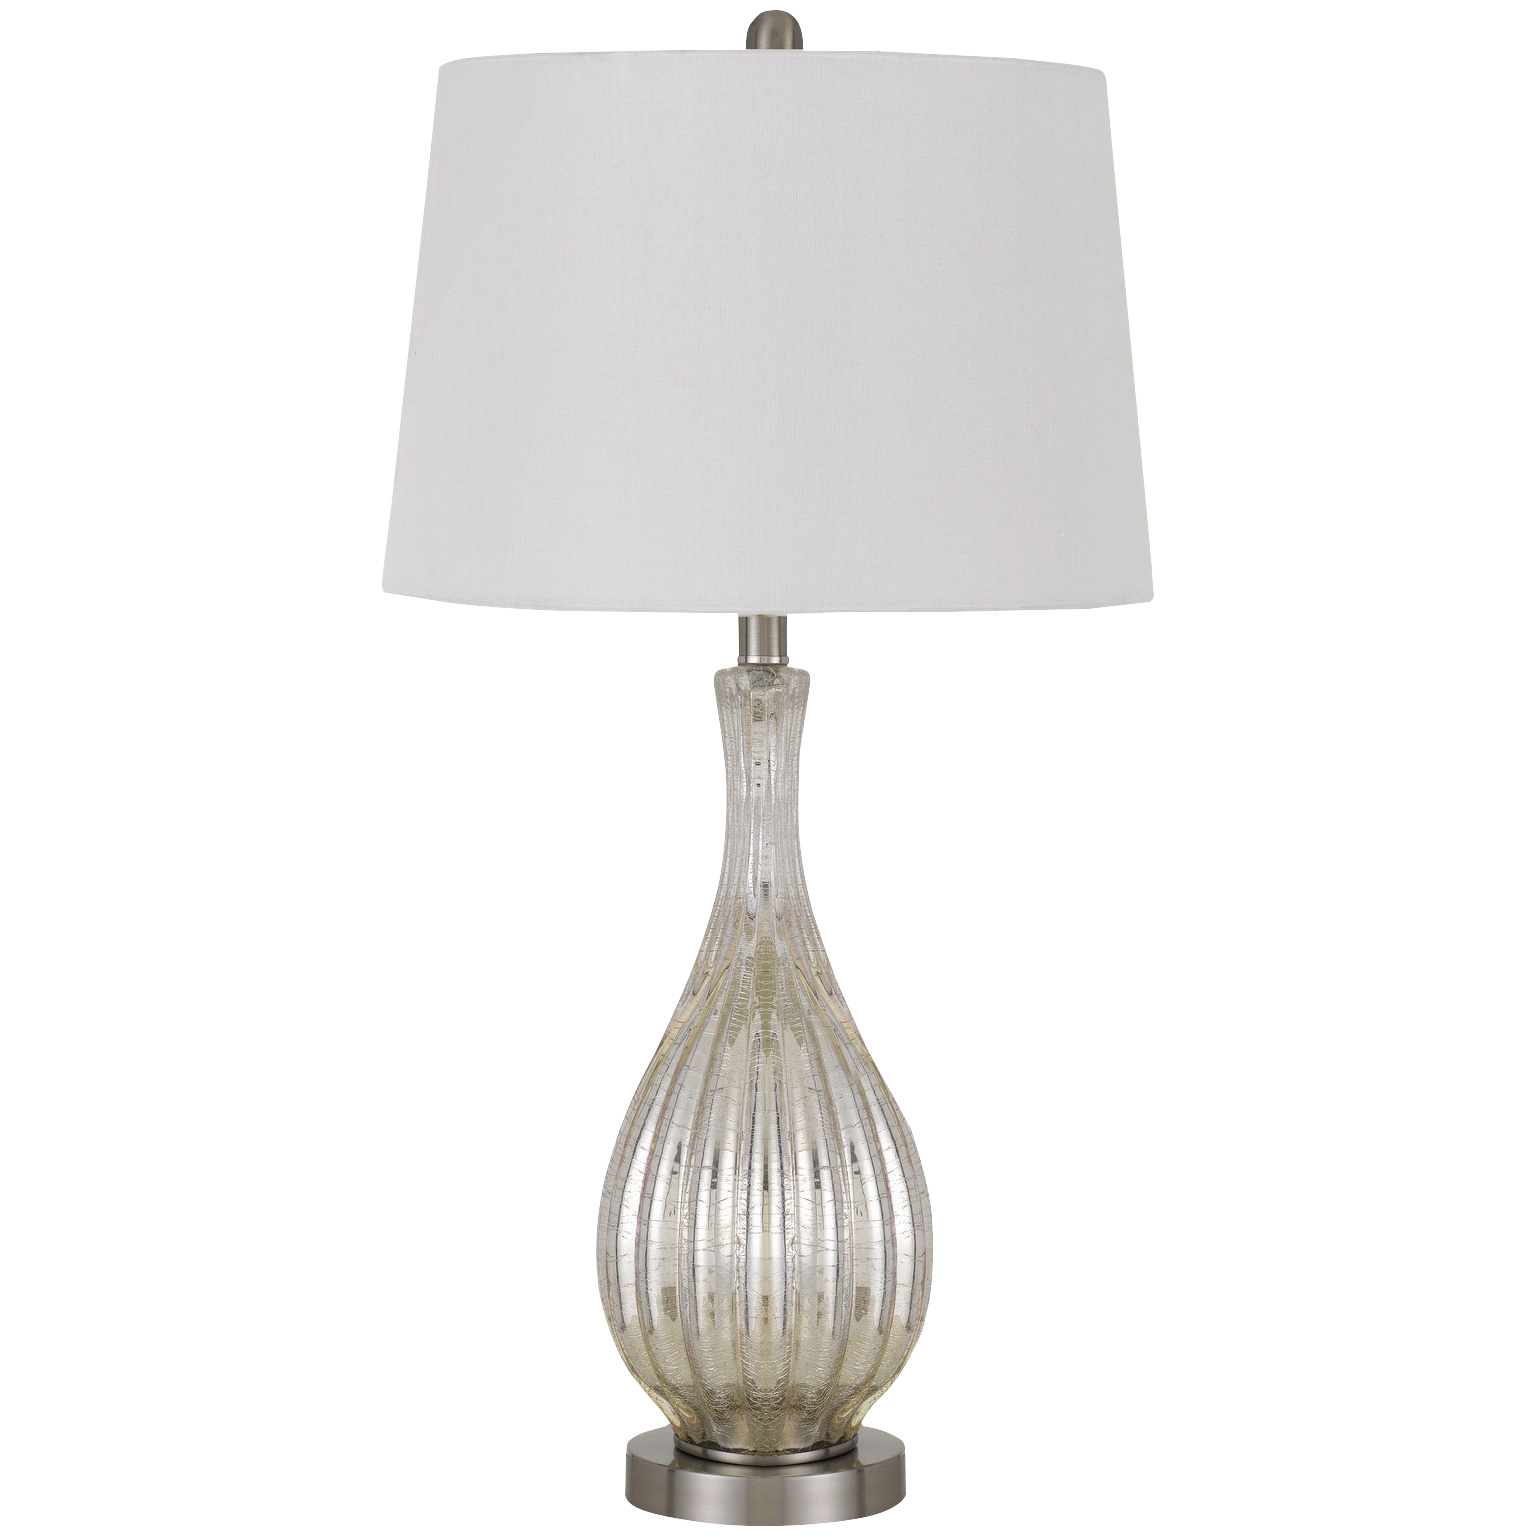 Cal Lighting | Goch Silver Set of 2 Table Lamps